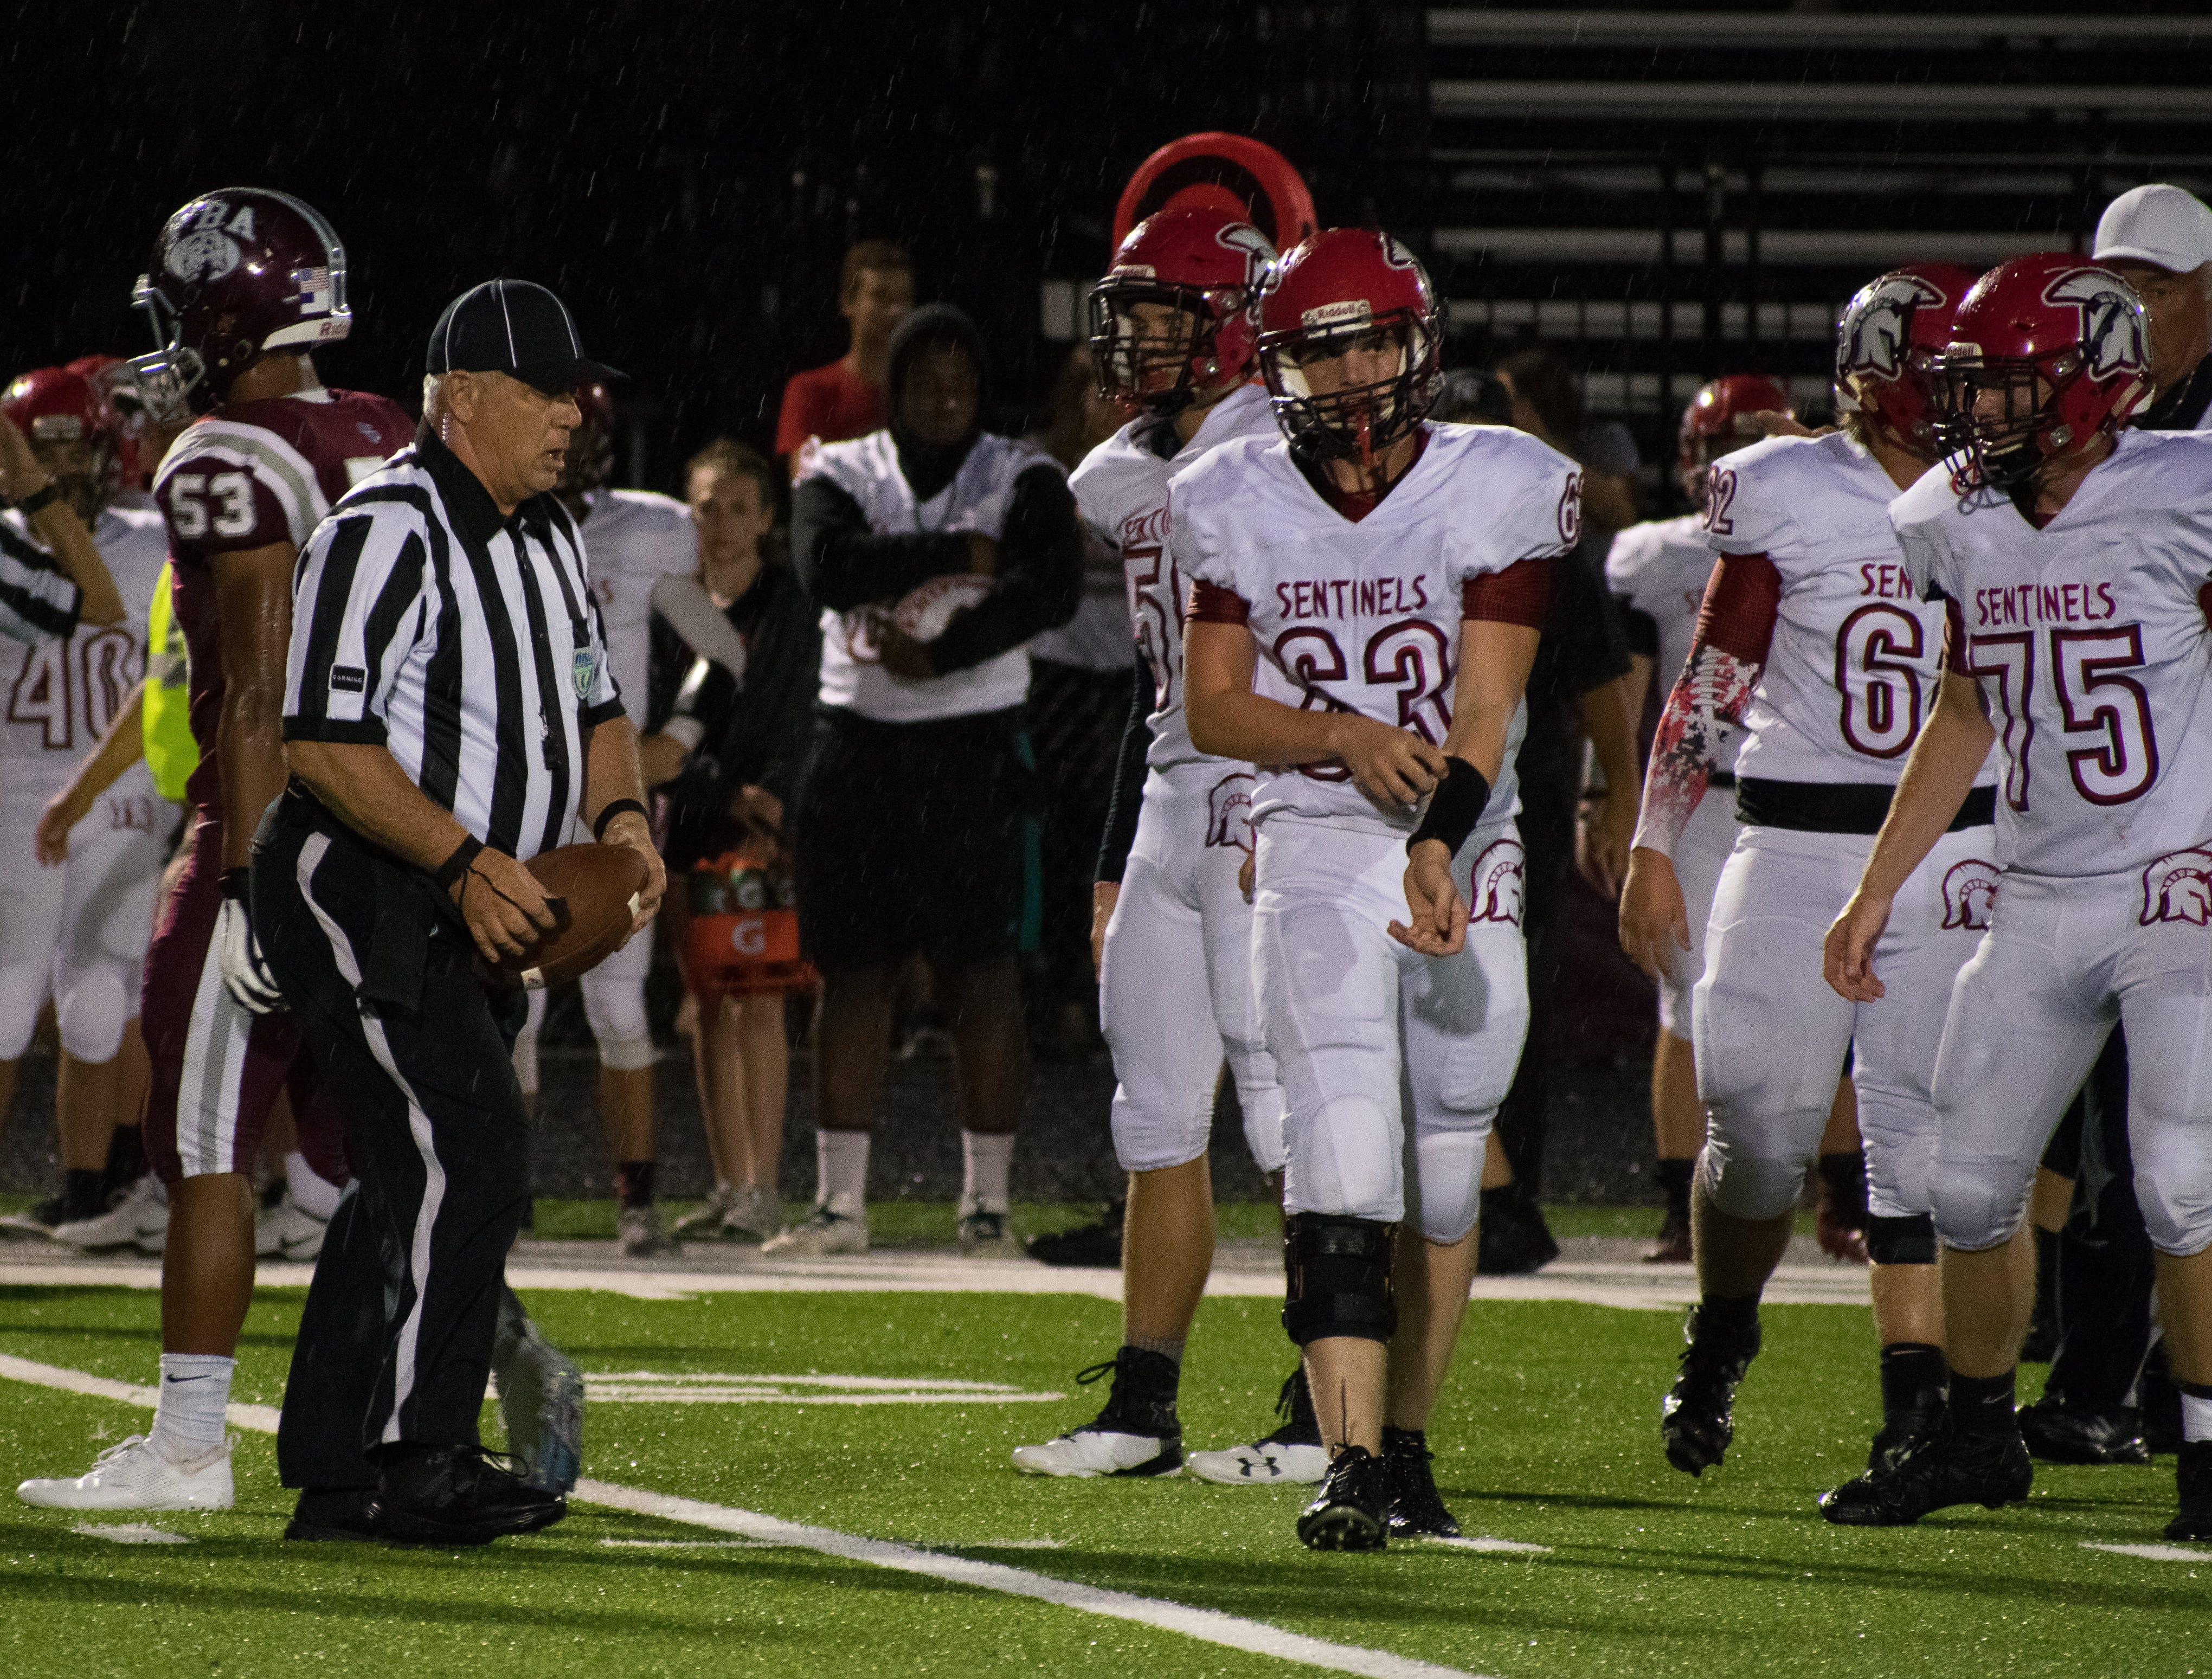 The First Baptist Academy football team defeated Evangelical Christian, 54-14, on Aug. 24, 2018 after a two-hour lightning delay.